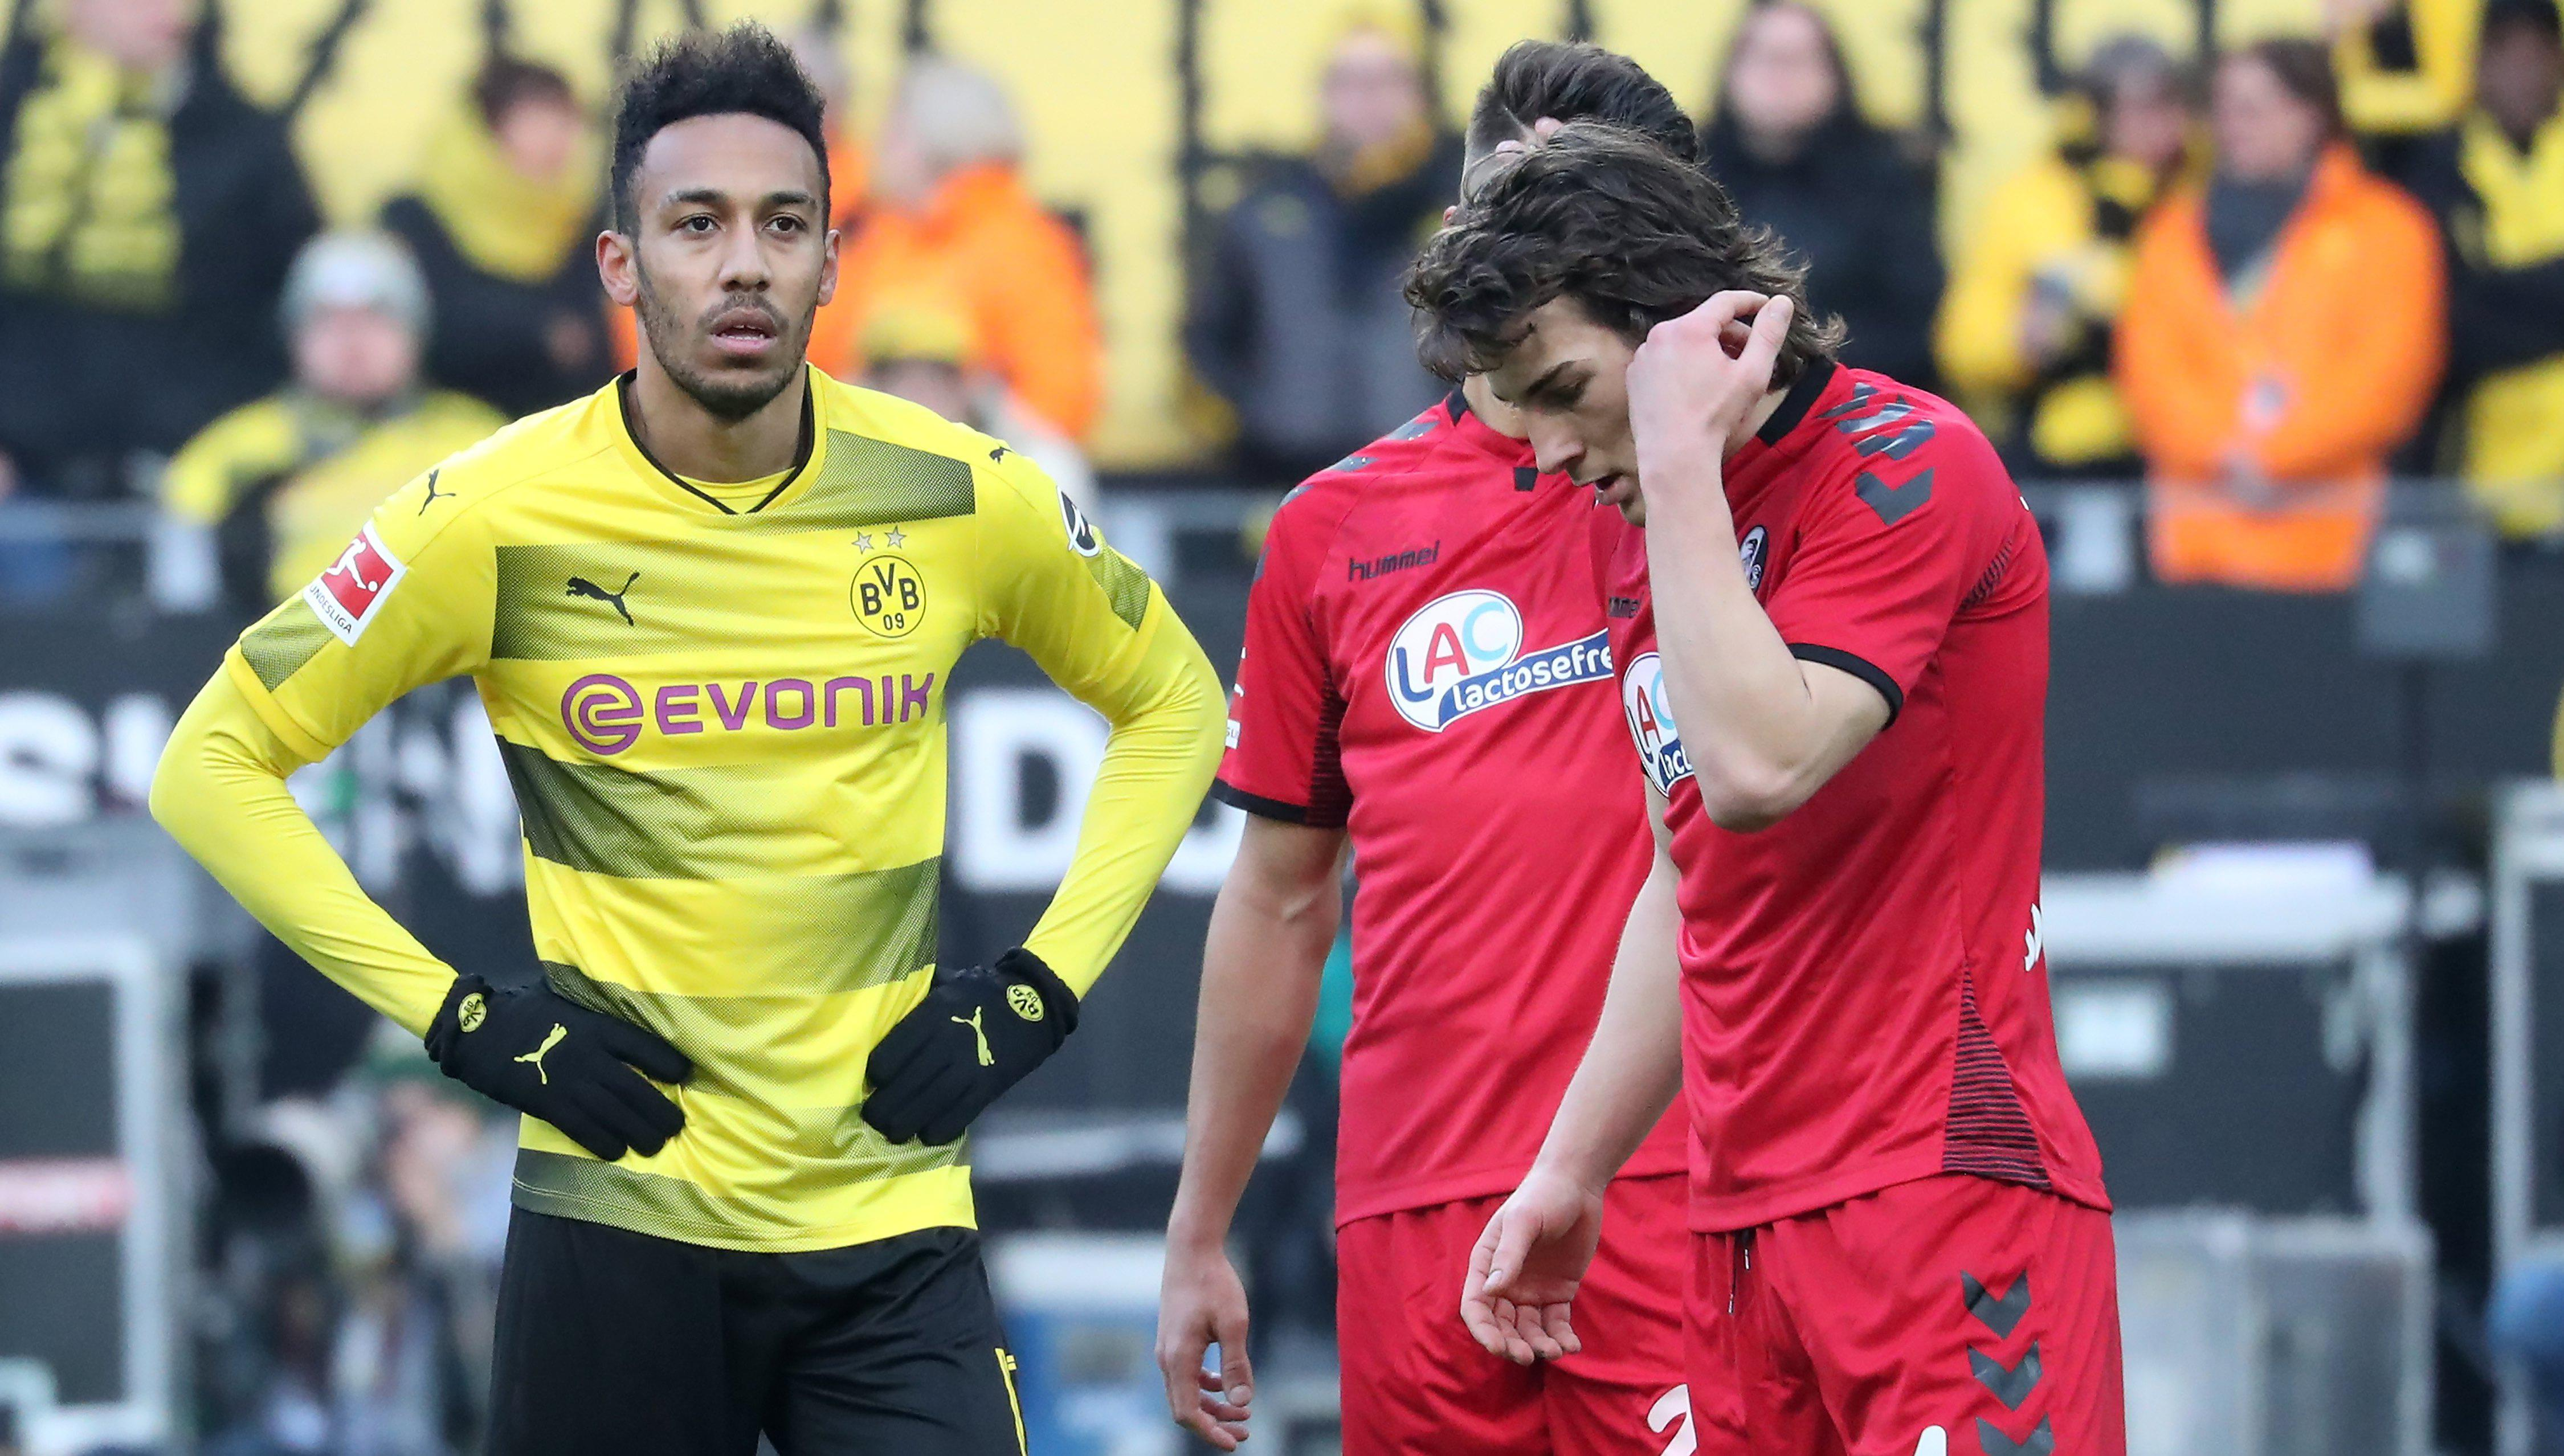 Aubameyang in action against Freiburg